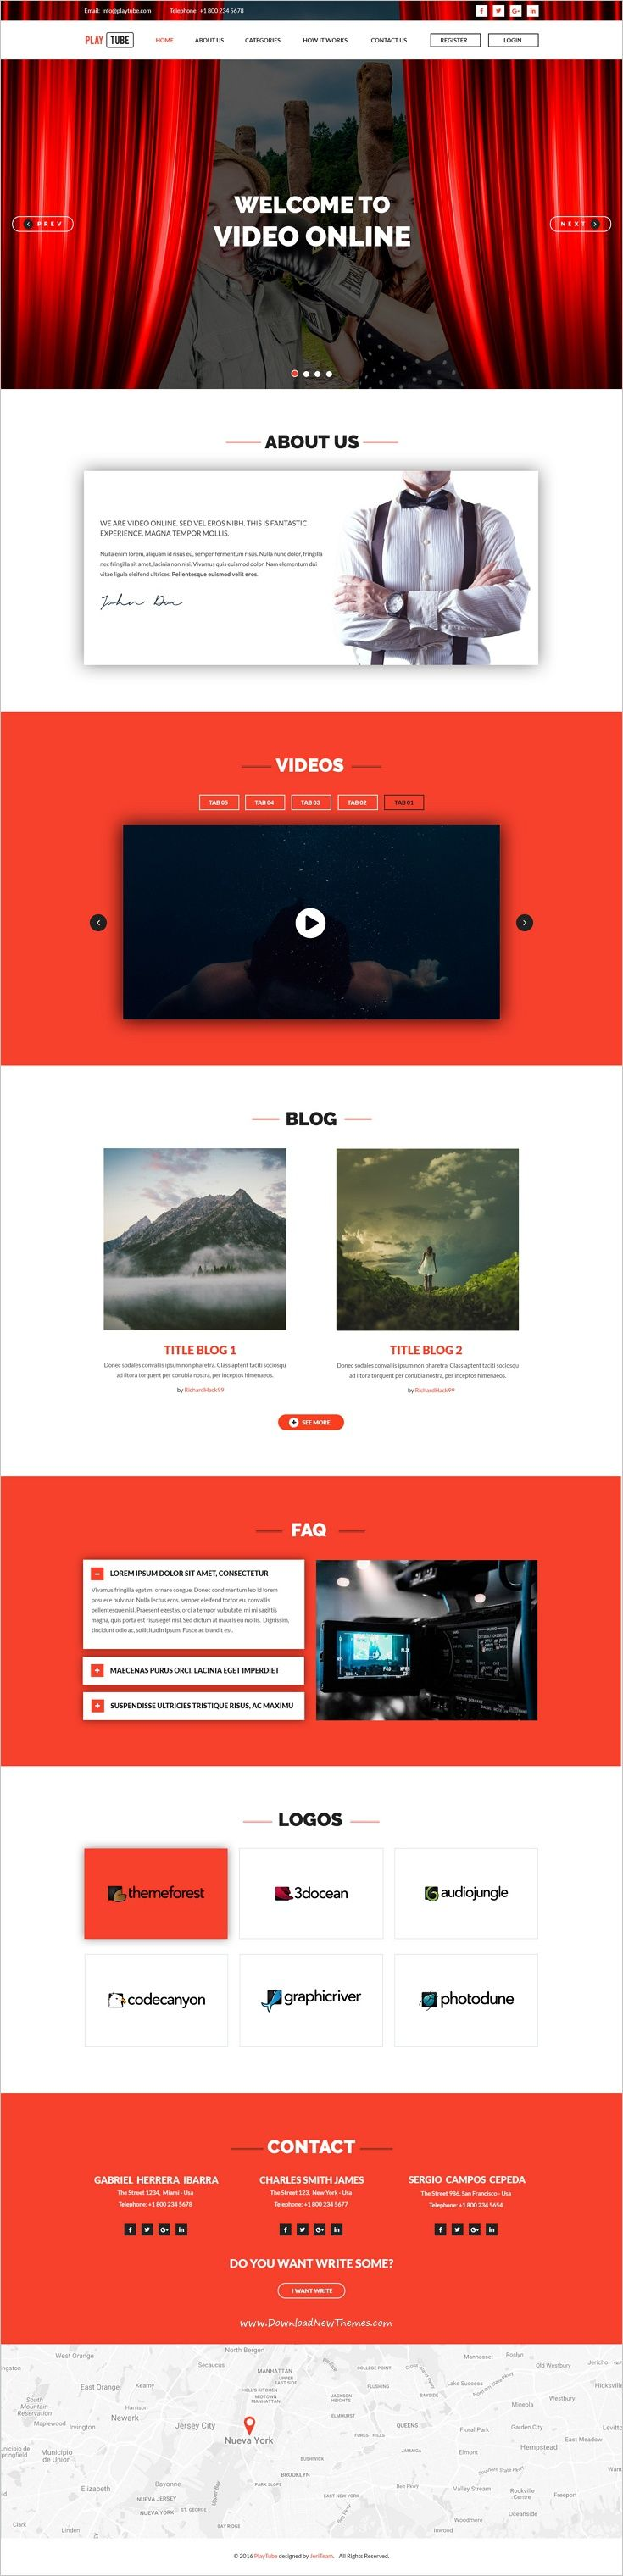 PlayTube is a wonderful #PSD Template suitable for #webdev any #sites of #video, videos download website download now➩ https://themeforest.net/item/playtube-video-psd-template/18123396?ref=Datasata